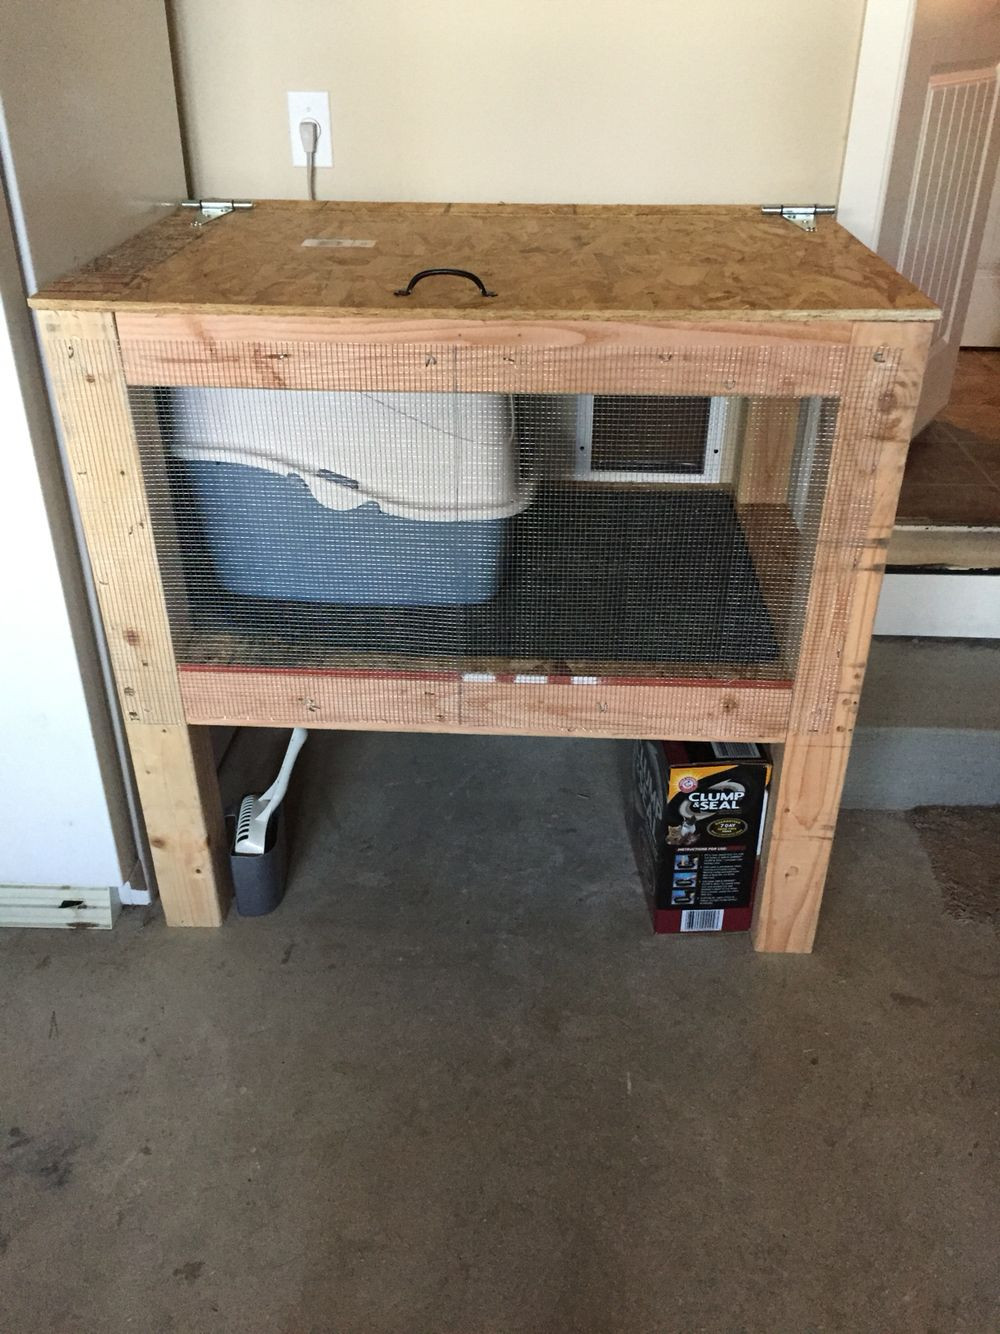 Best ideas about DIY Litter Box Enclosure . Save or Pin Cat enclosure Door from our laundry room into the garage Now.